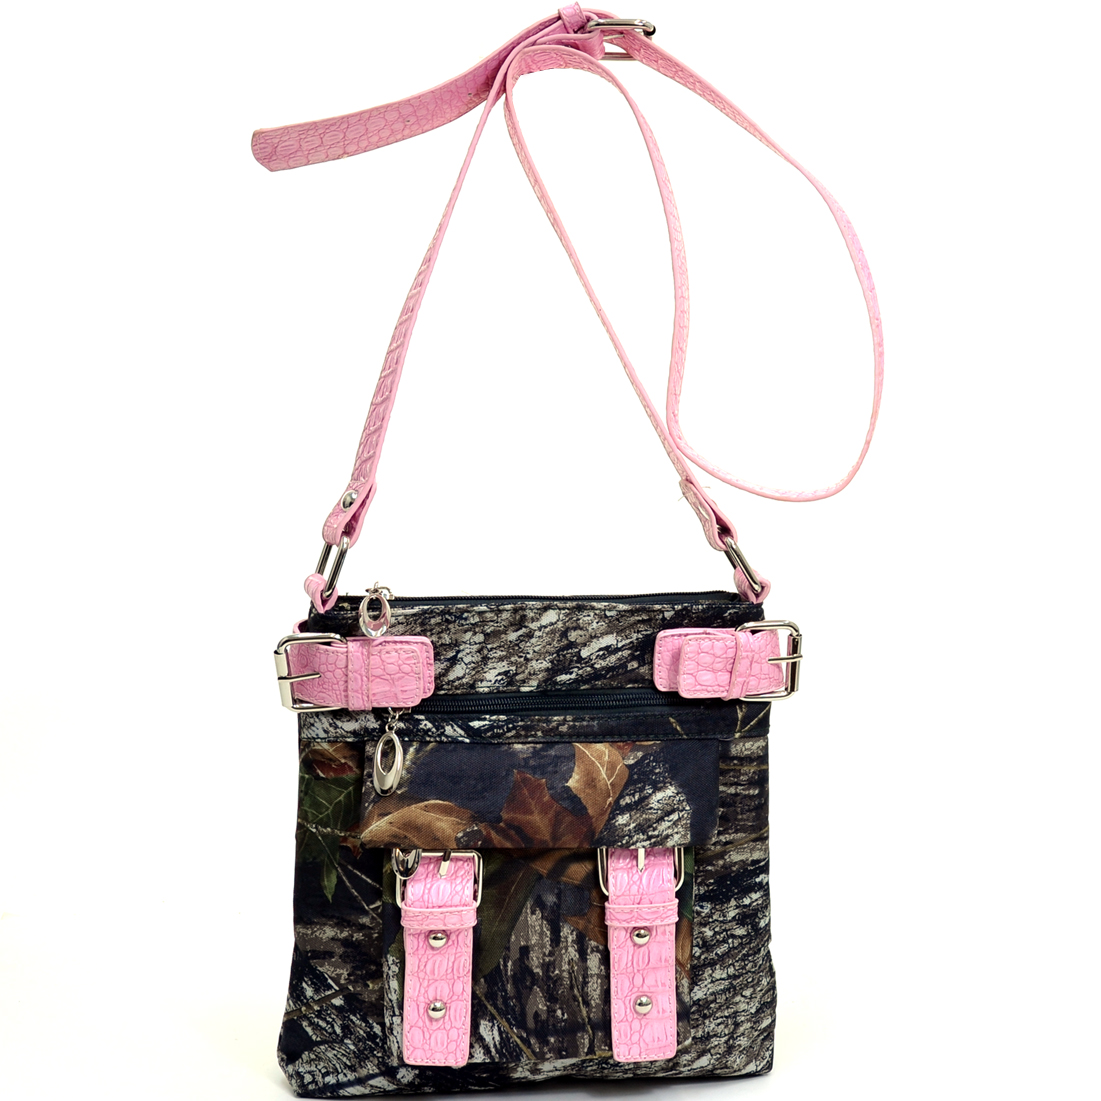 Mossy Oak® Camouflage Crossbody Bag w/ Belted Trim And Strap